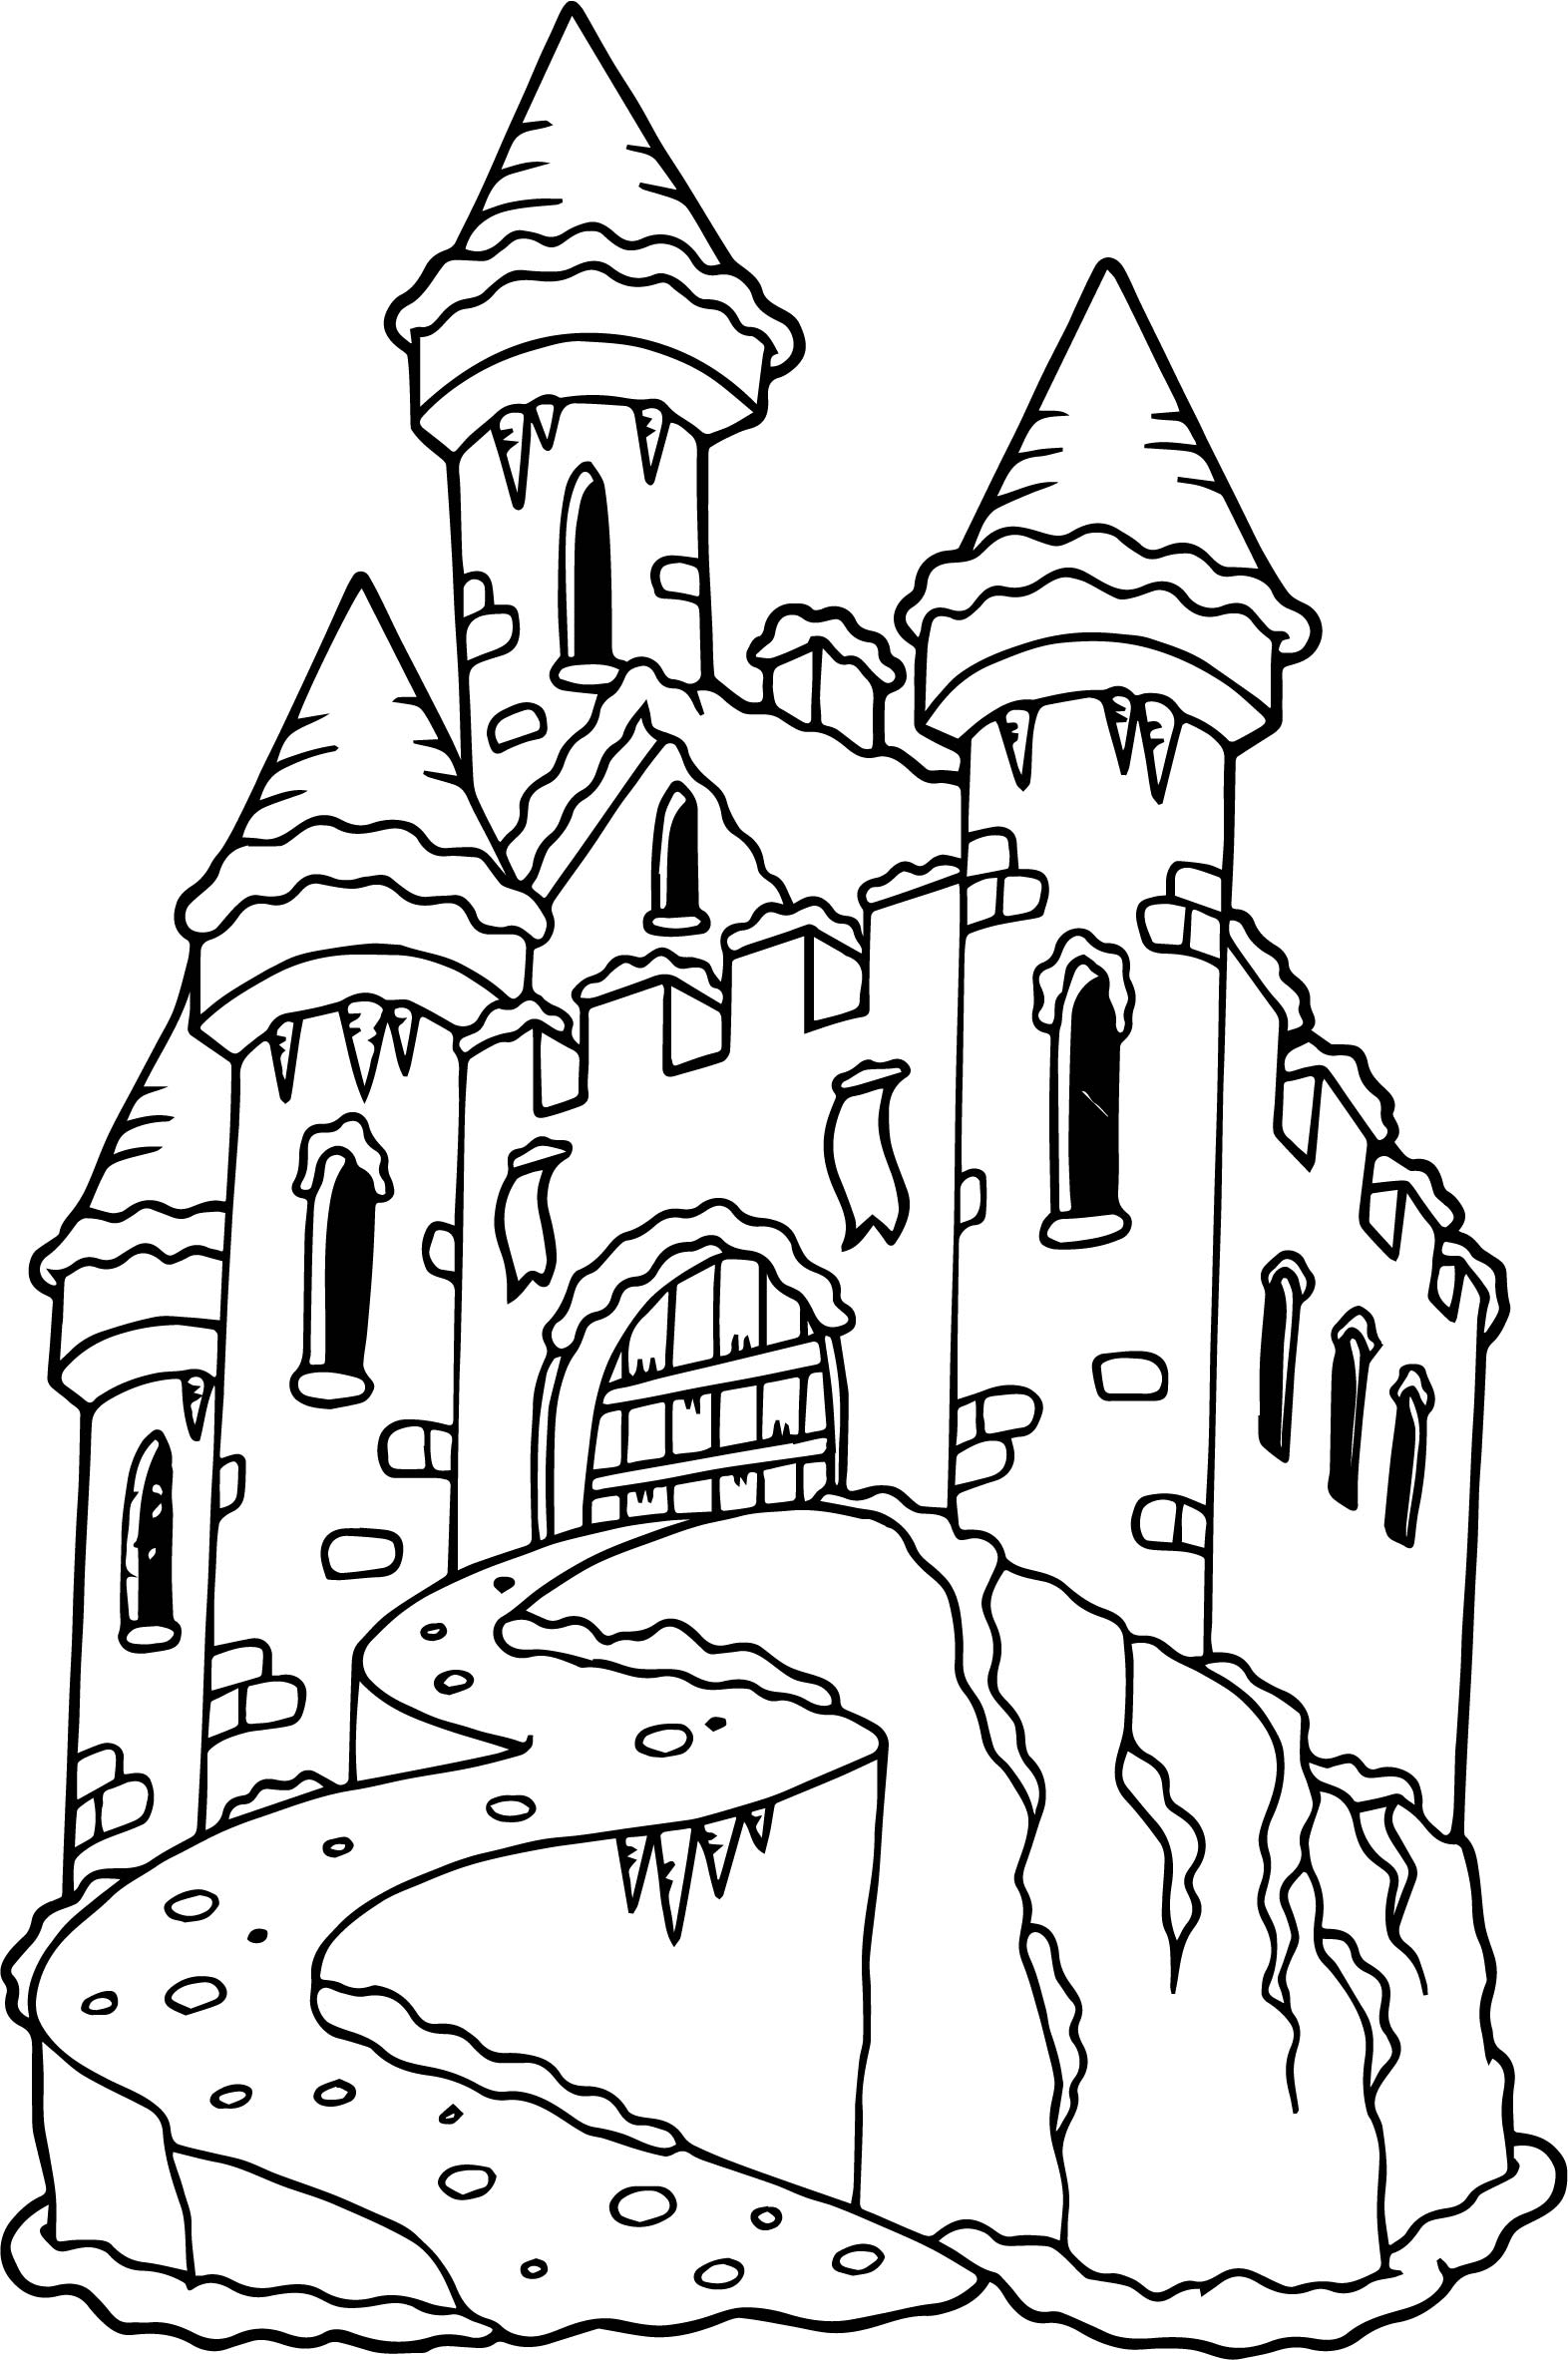 Coloring Pages Frozen Halloween : Halloween page smartness coloring pages frozen